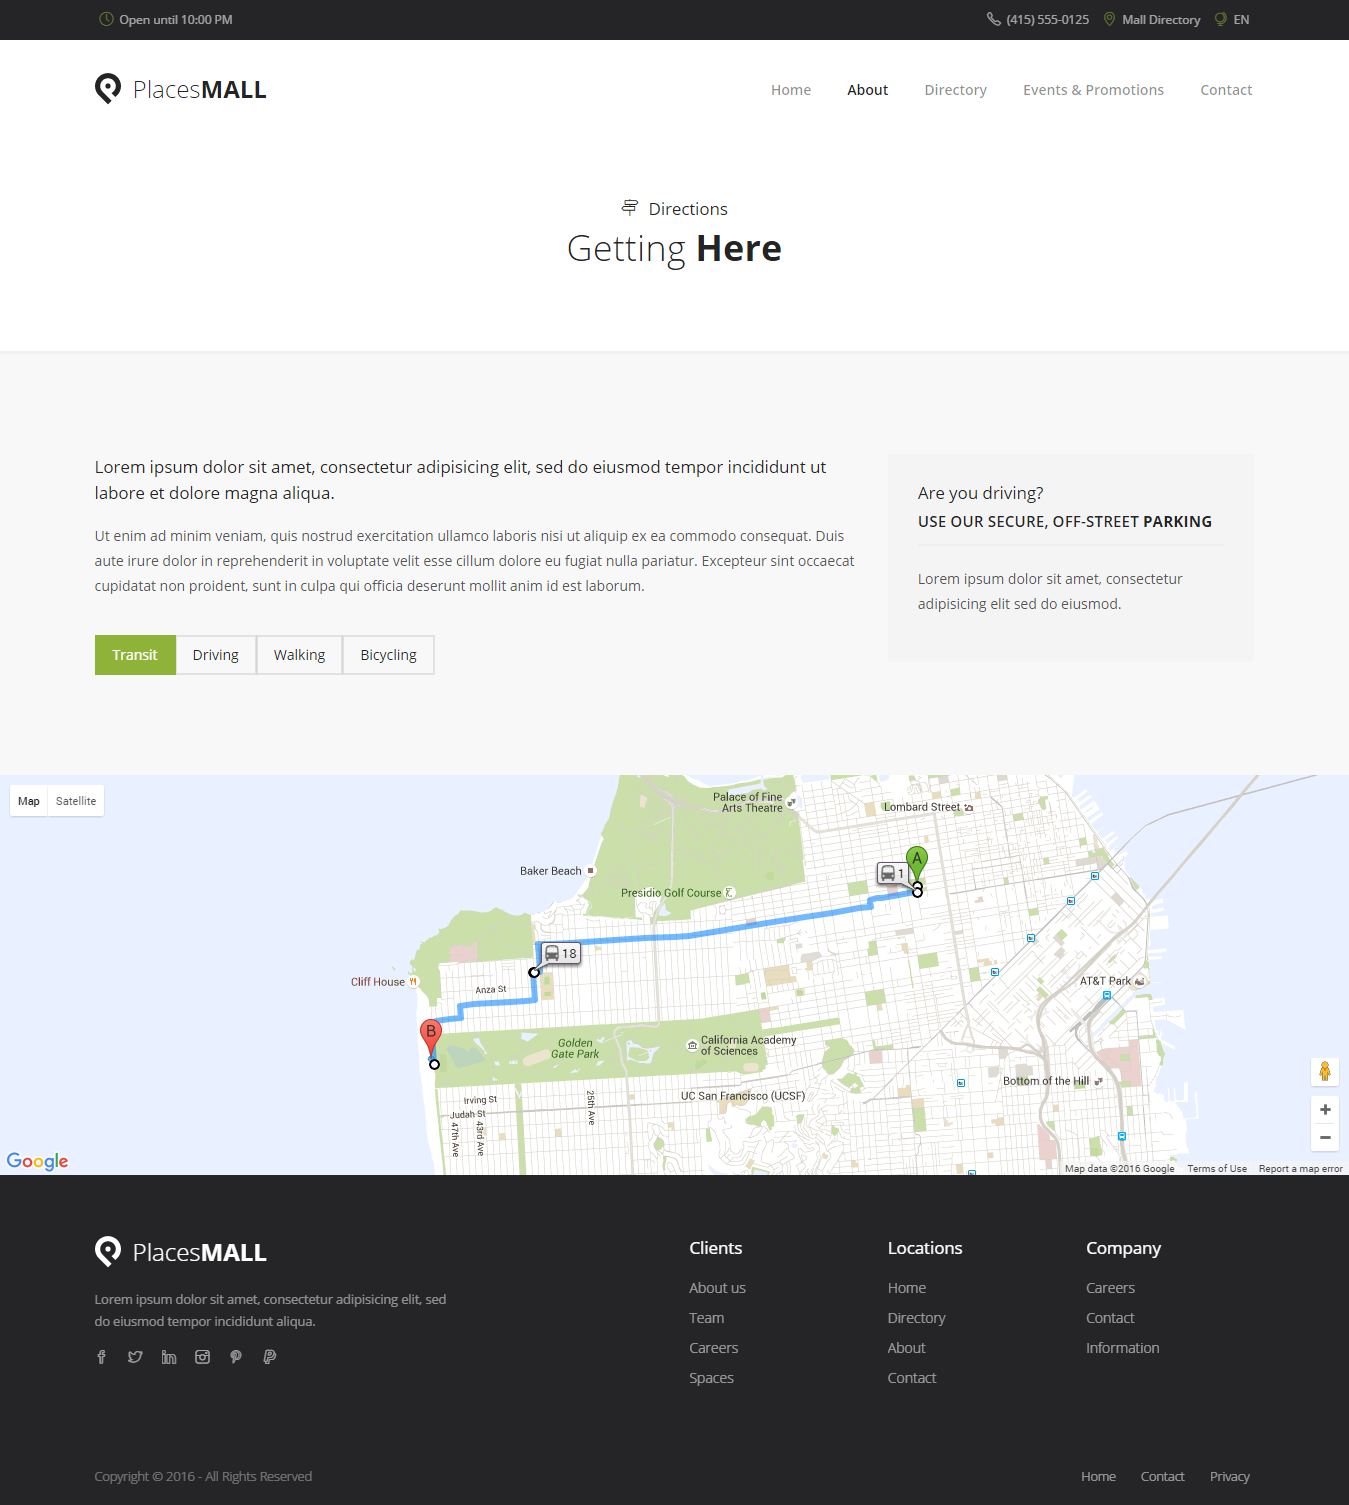 Places Custom Interactive Map HTML Template By Sekler ThemeForest - Interactive us map html5